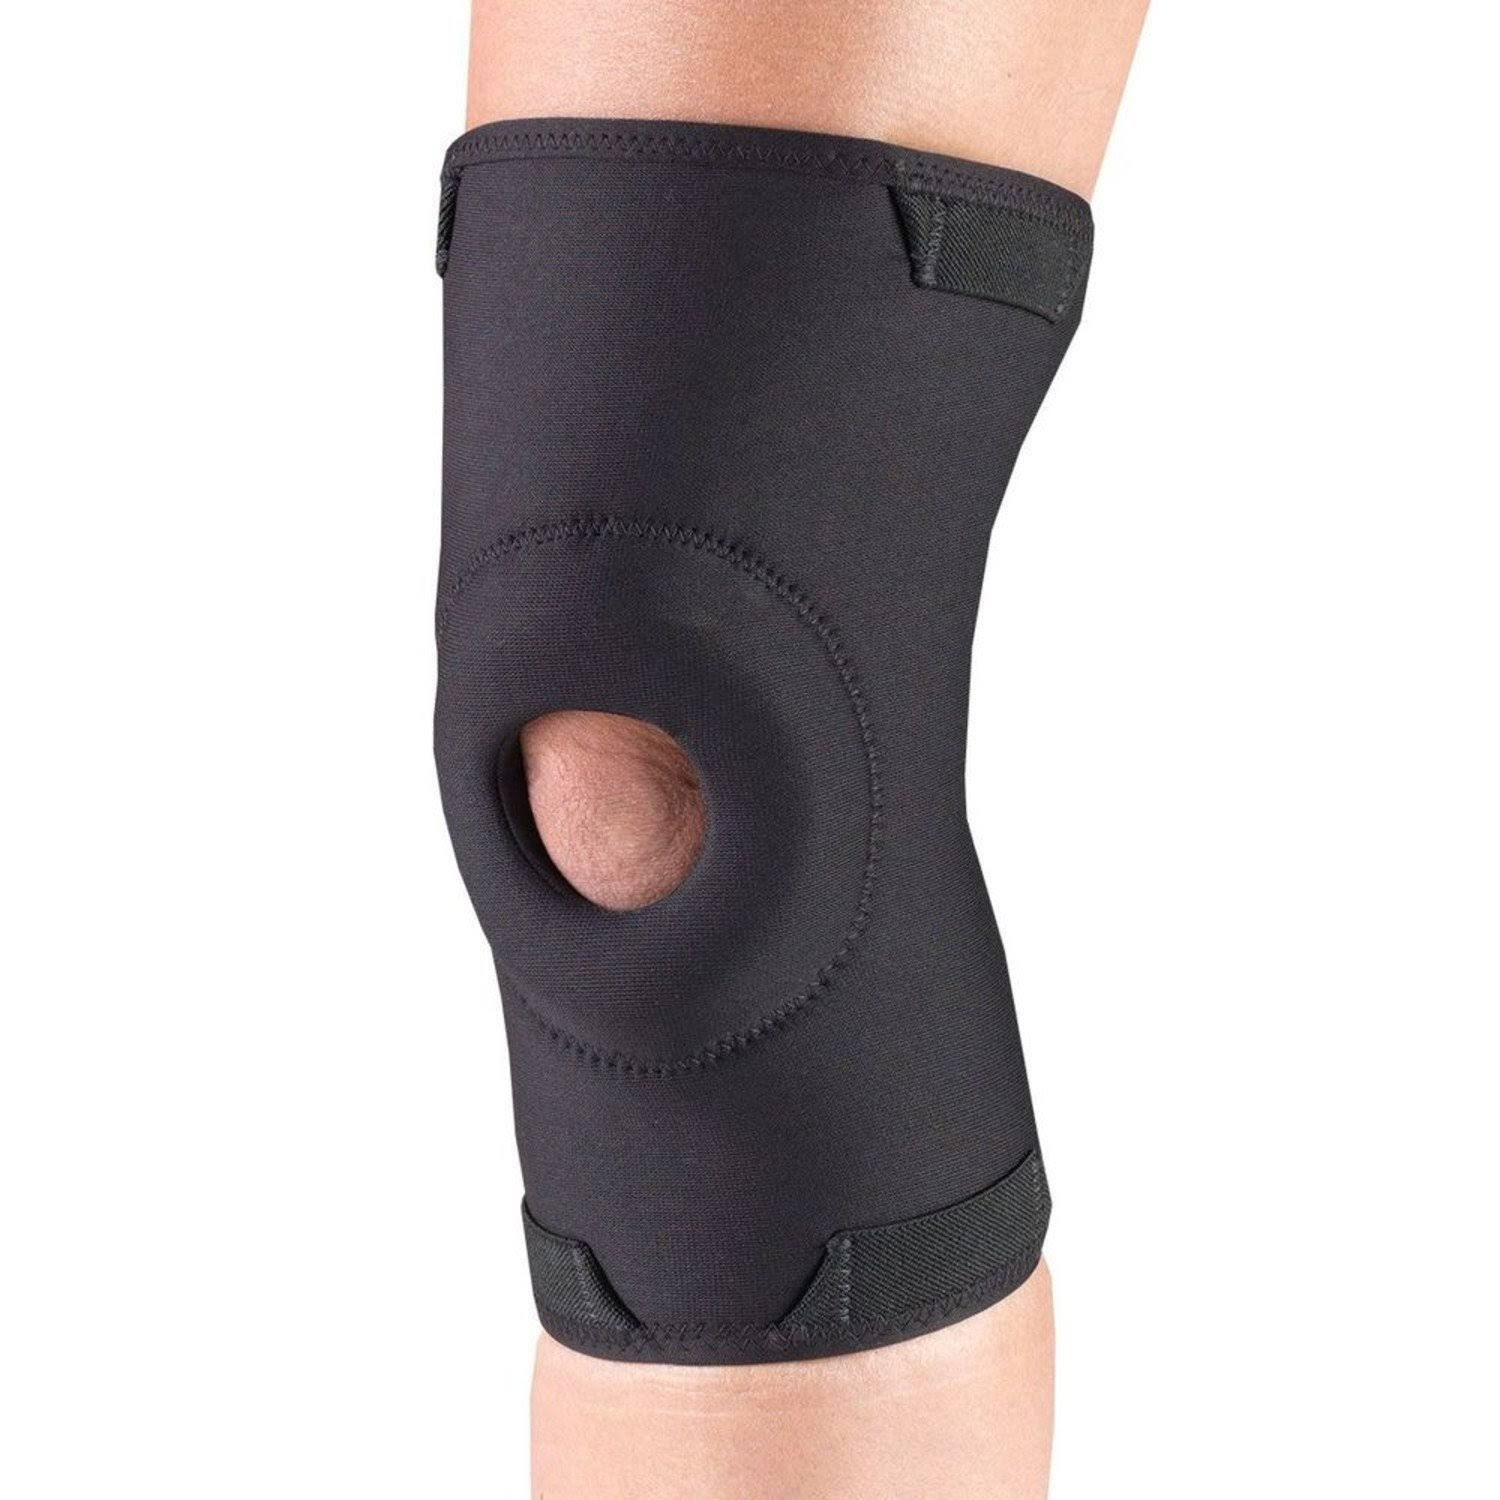 Otc Orthotex Knee Support Stabilizer Pad - Black, X-Large